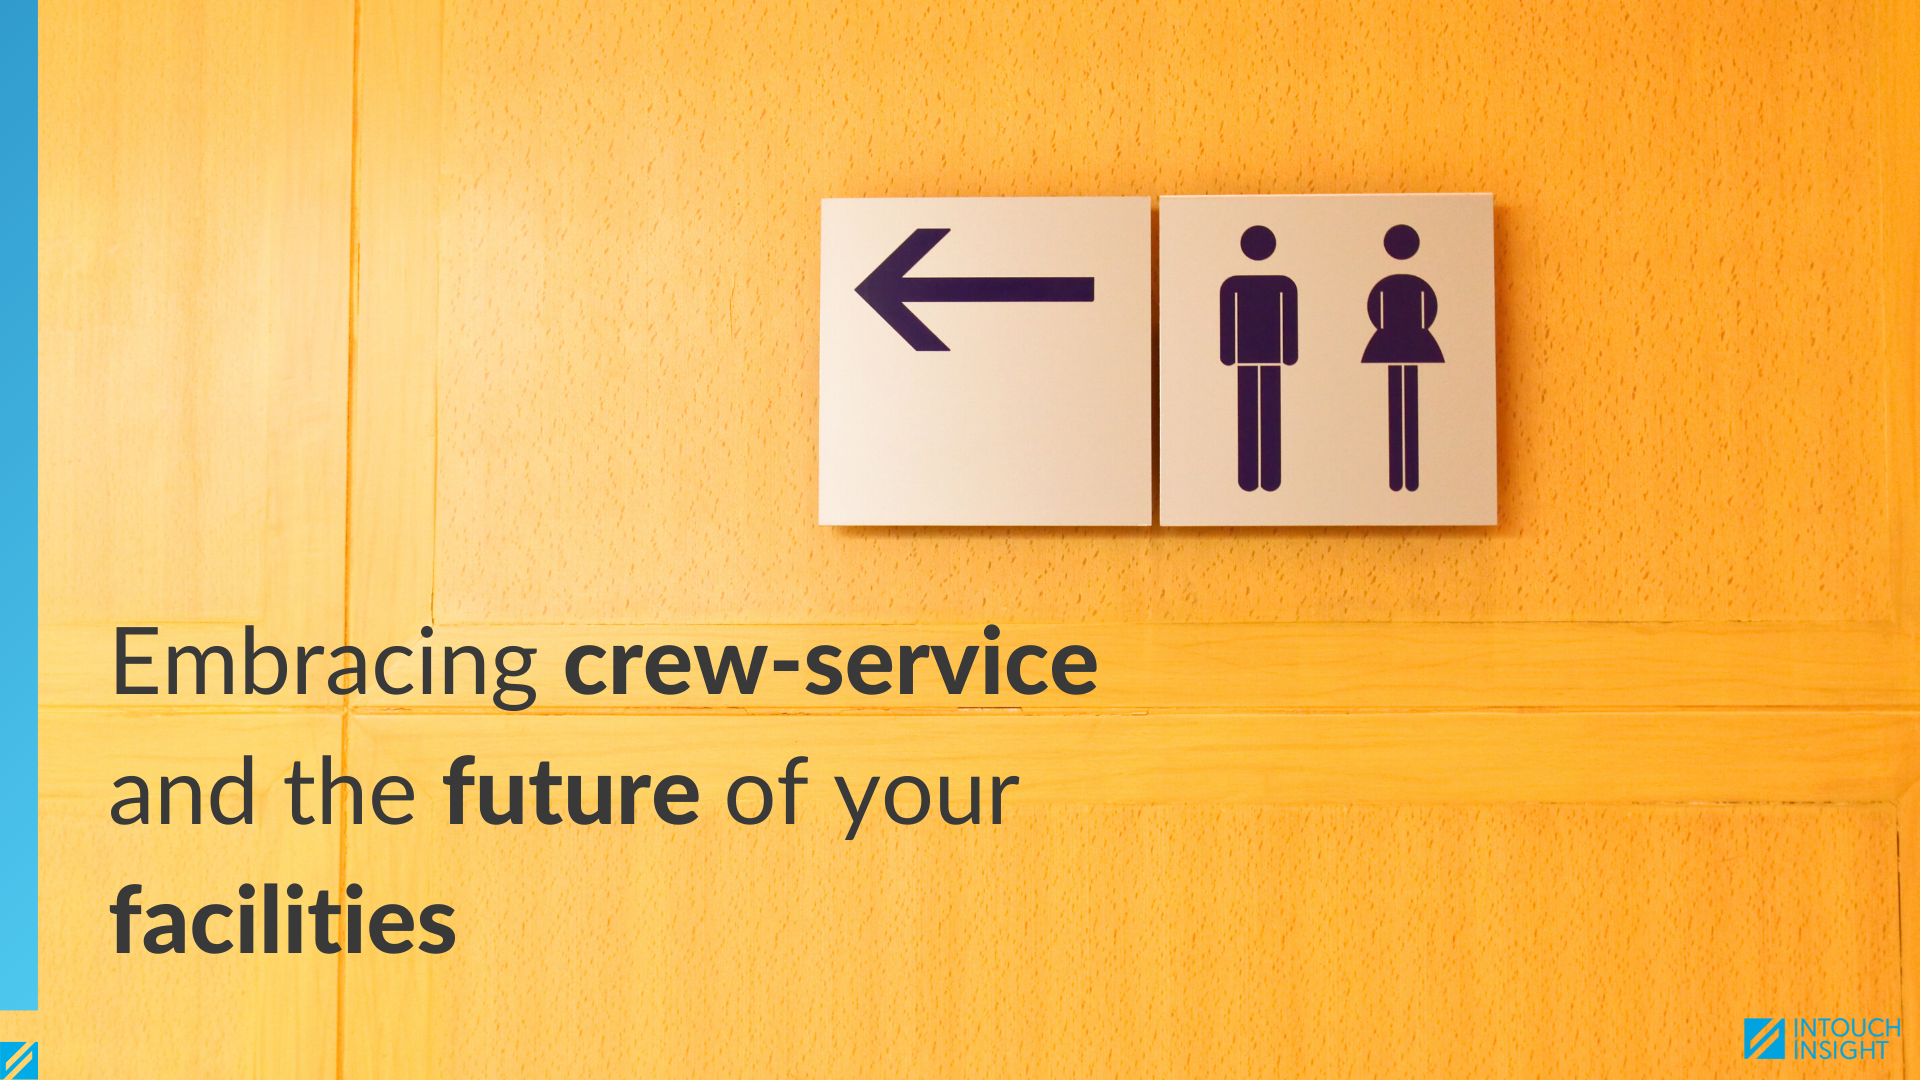 Embracing-crew-service-and-the-future-of-your-facilities